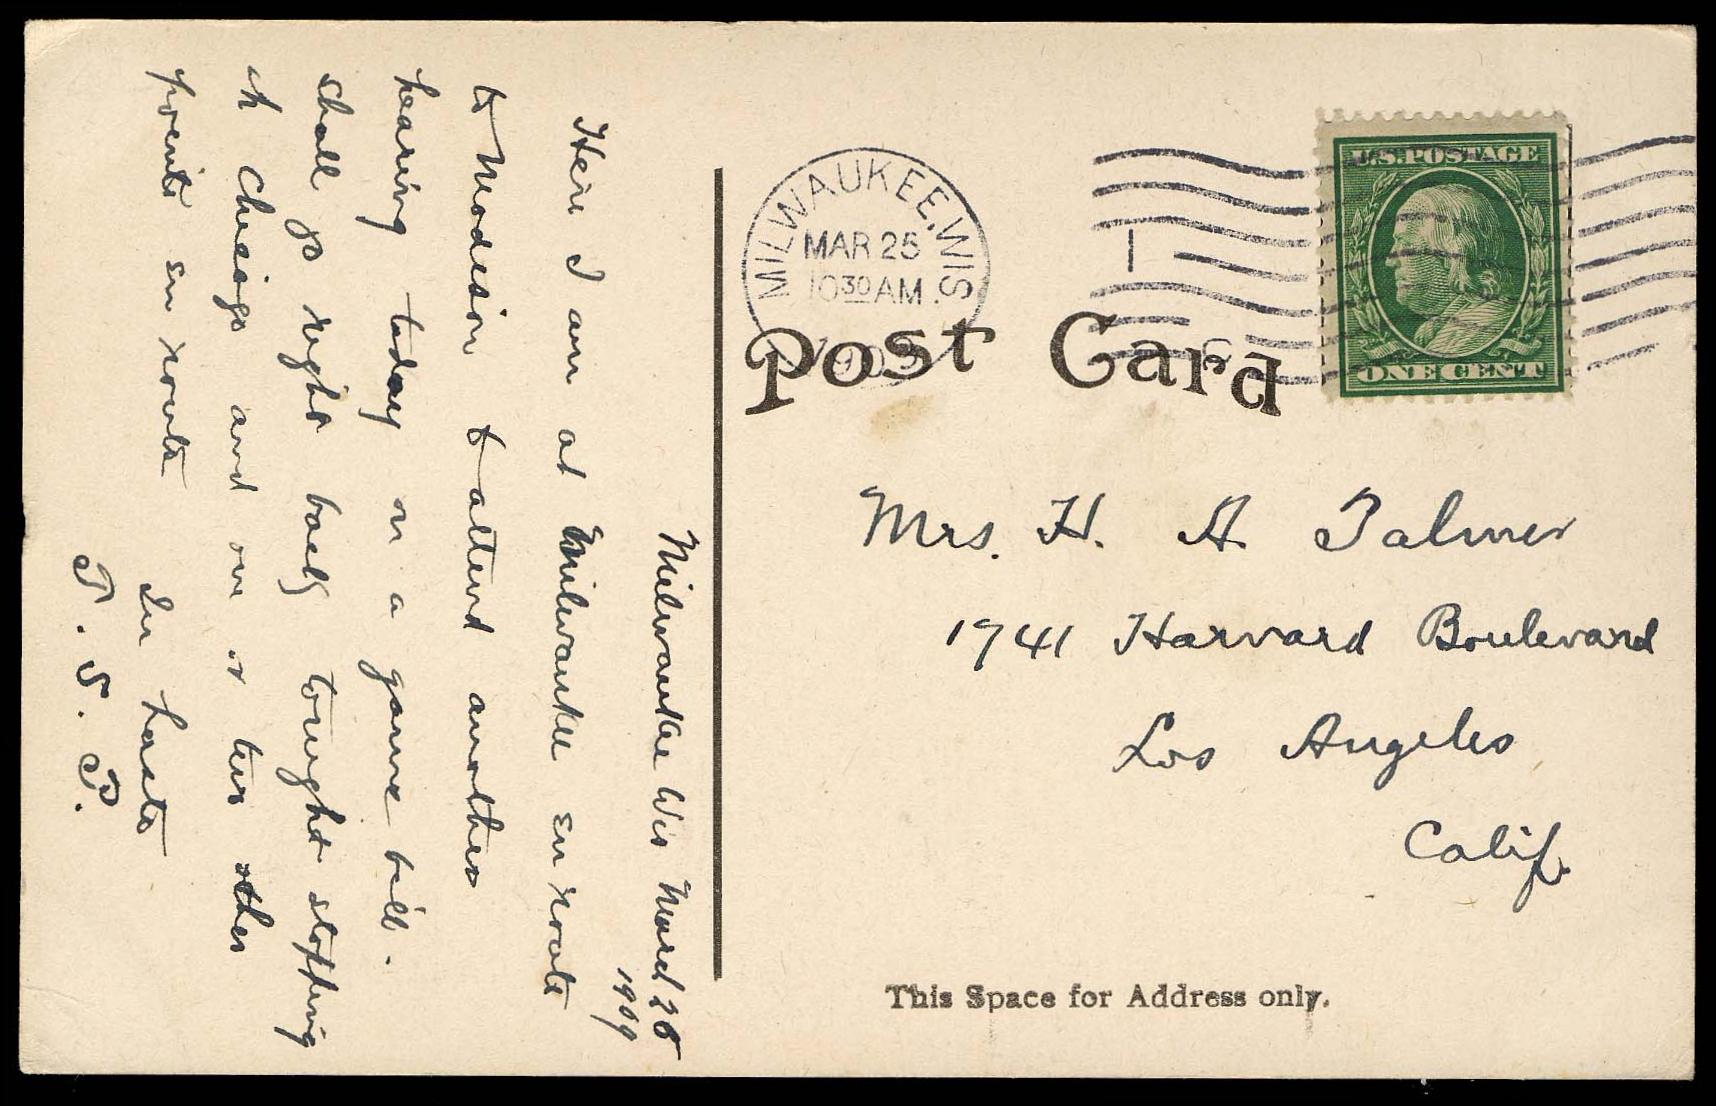 #357 mailed from Milwaukee on picture postcard, PSE Certificate